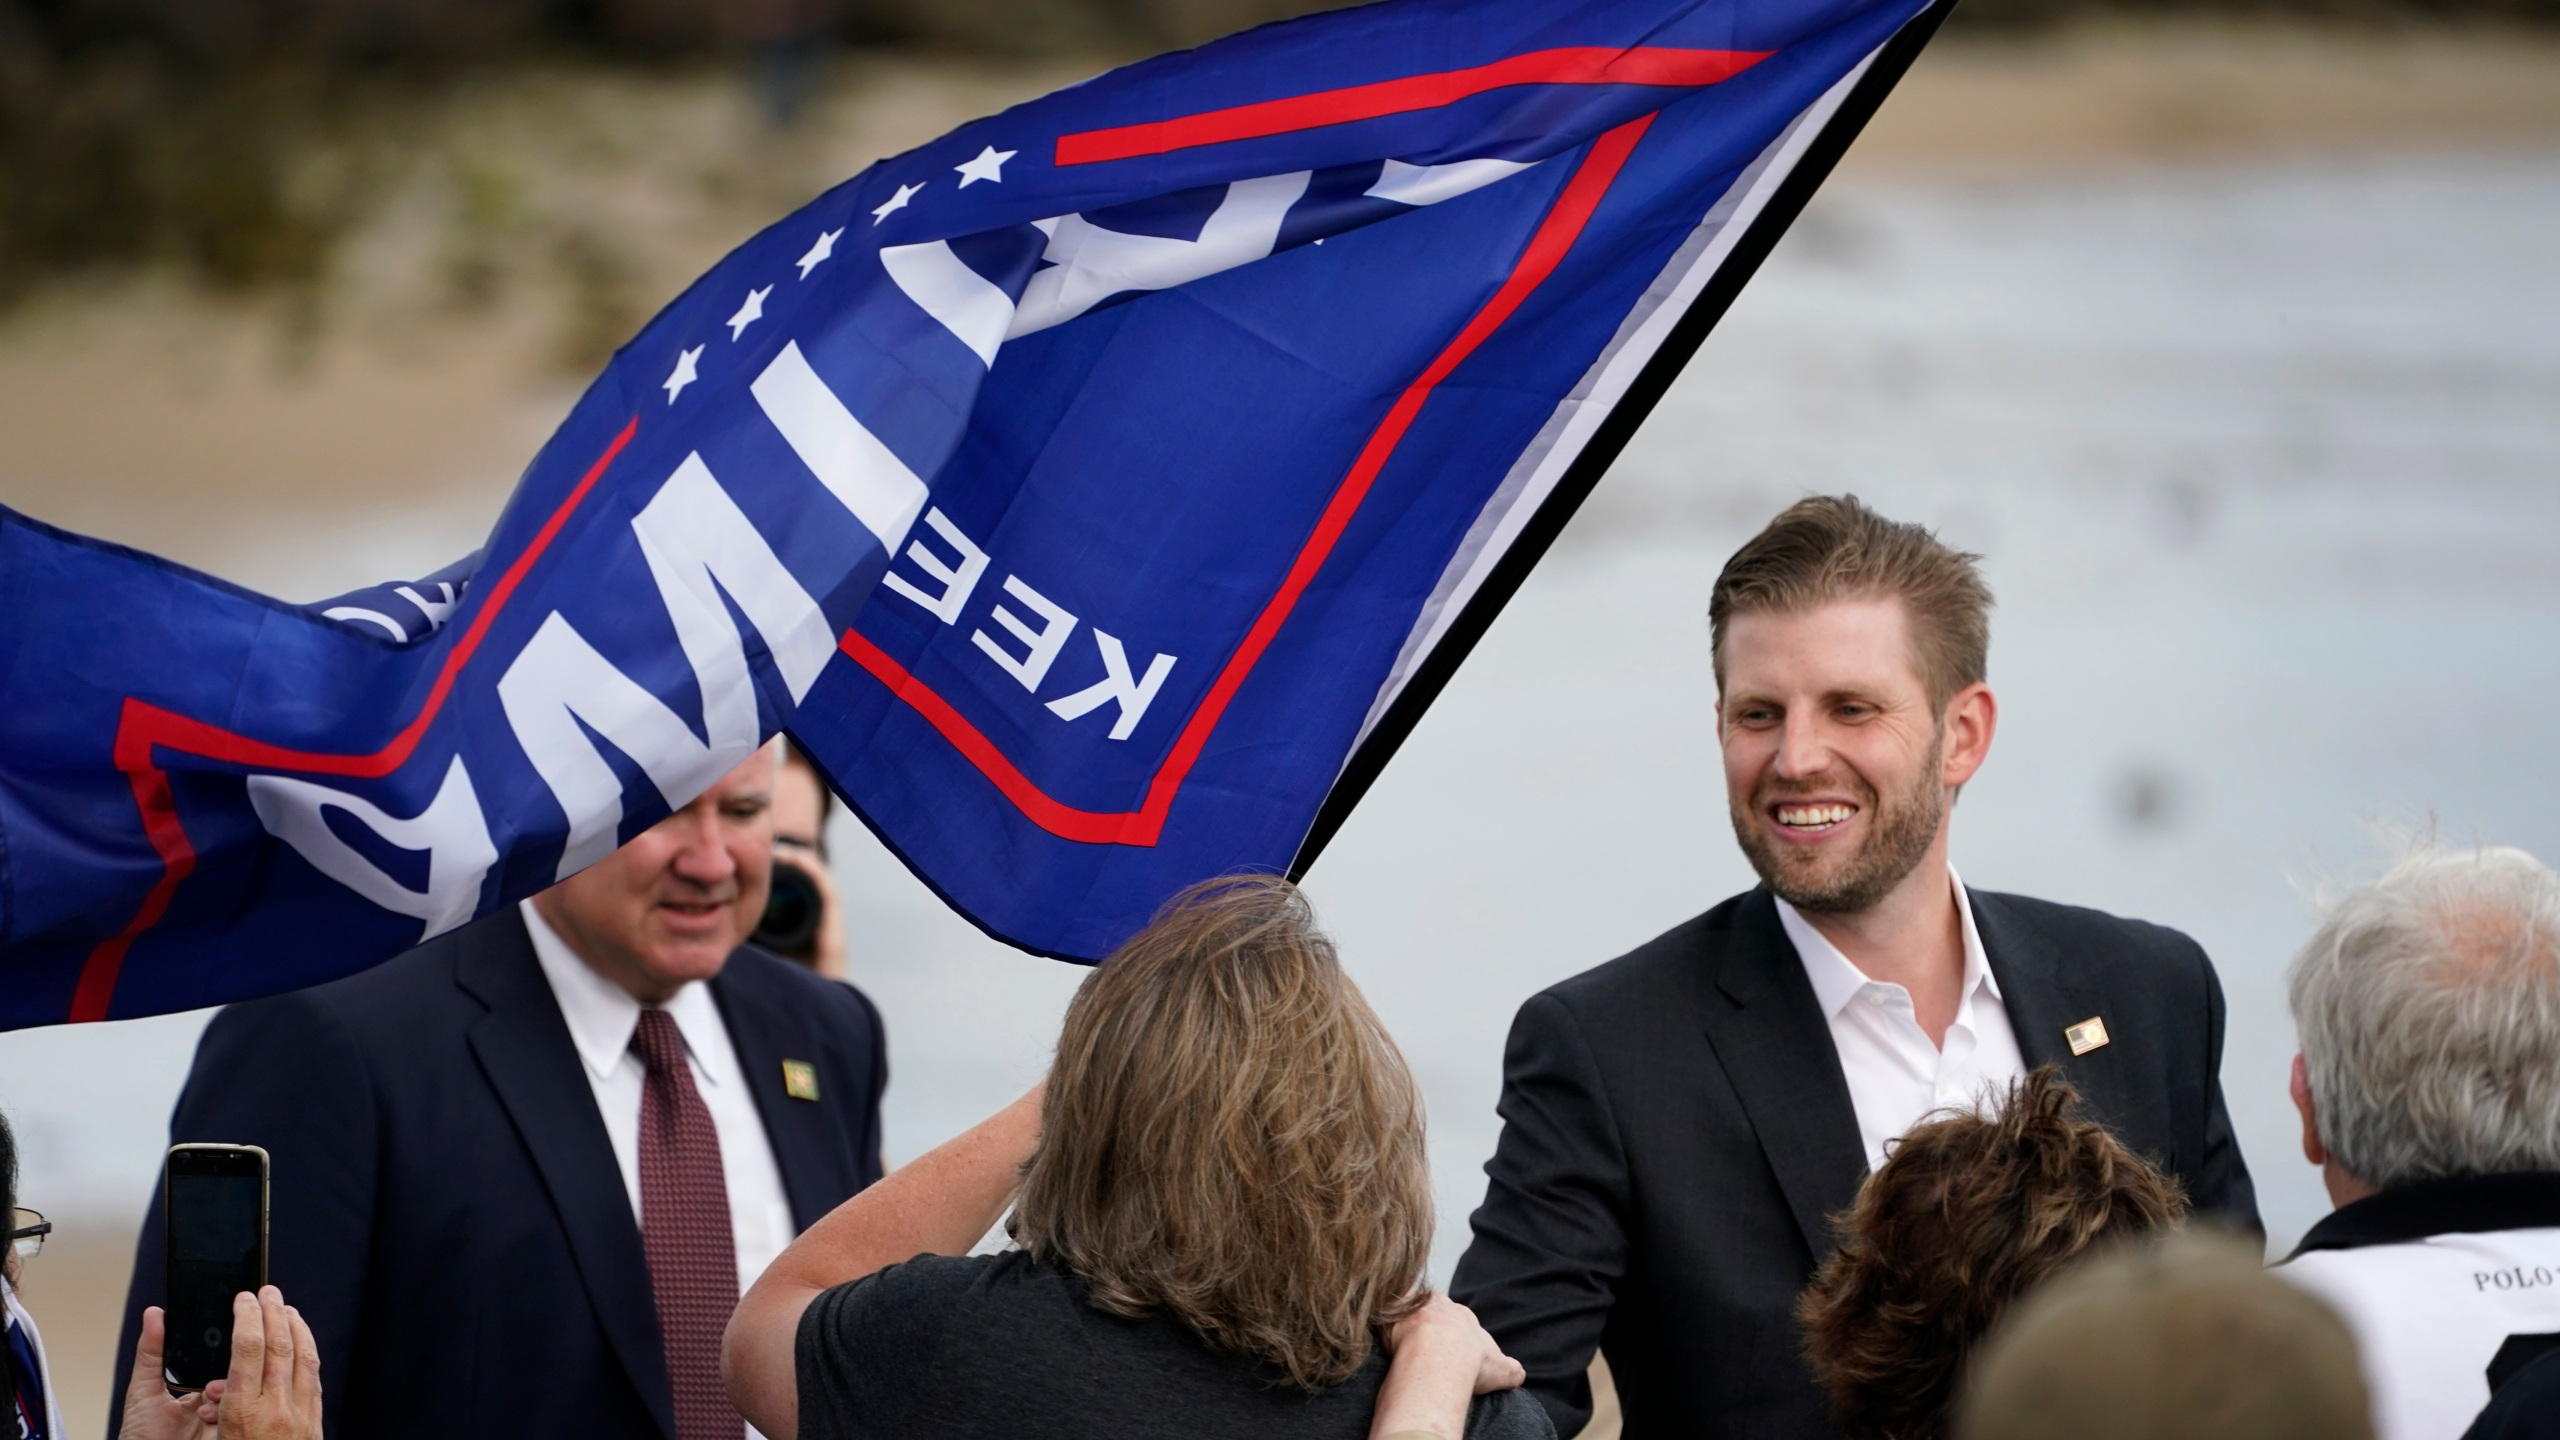 Eric Trump, the son of President Donald Trump, greets supporters at a campaign rally, Tuesday, Sept. 17, 2020, in Saco, Maine. (AP Photo/Robert F. Bukaty)